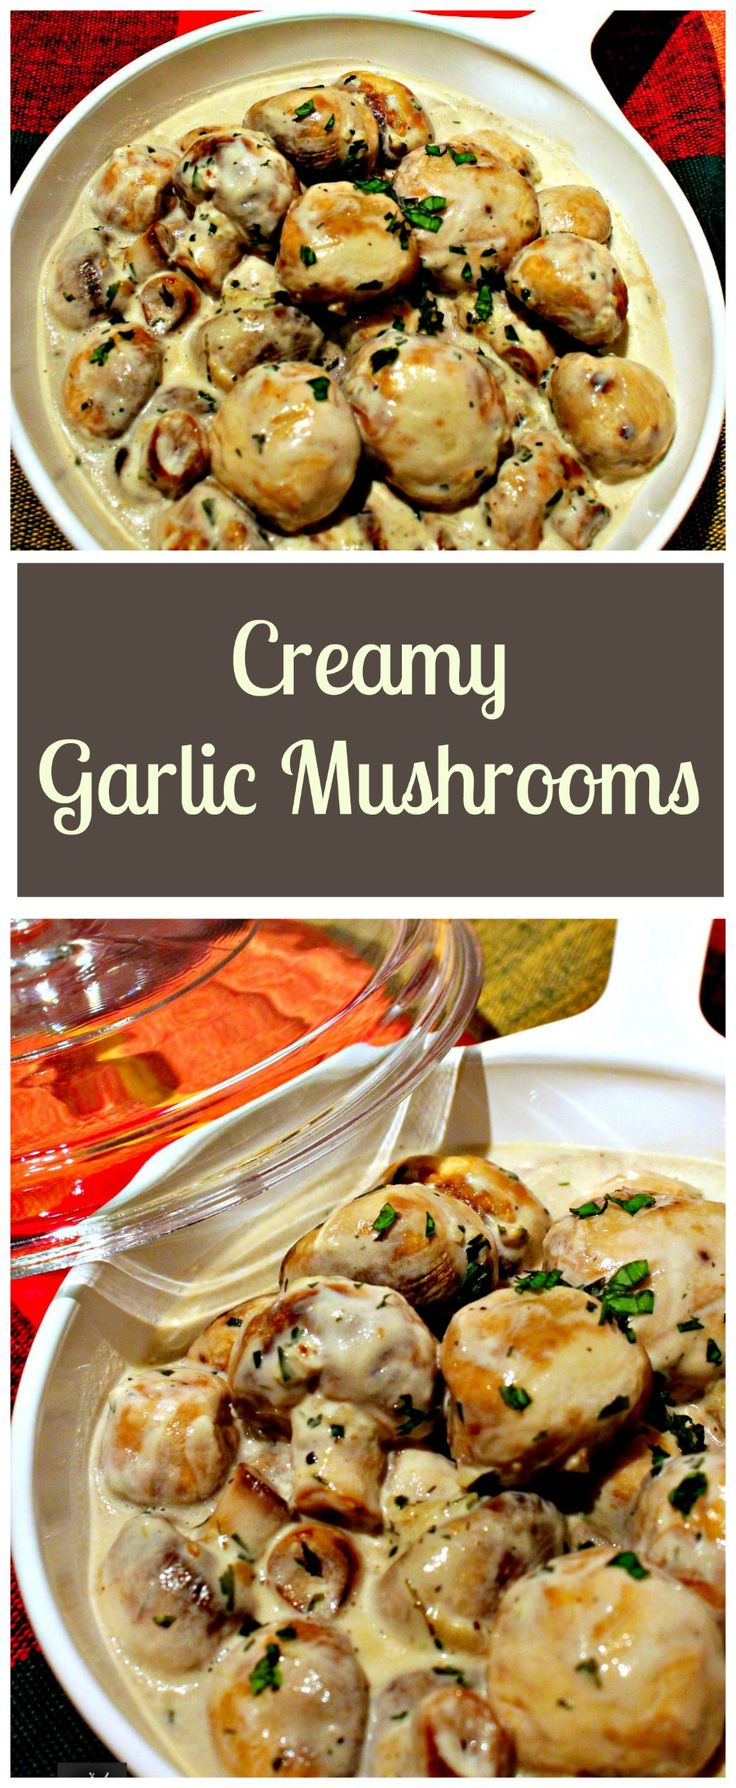 Creamy Garlic Mushrooms. This is a very quick, easy and delicious recipe, perfect as a side, serve on toast for brunch, or add to some lovely pasta! | Lovefoodies.com via @lovefoodies